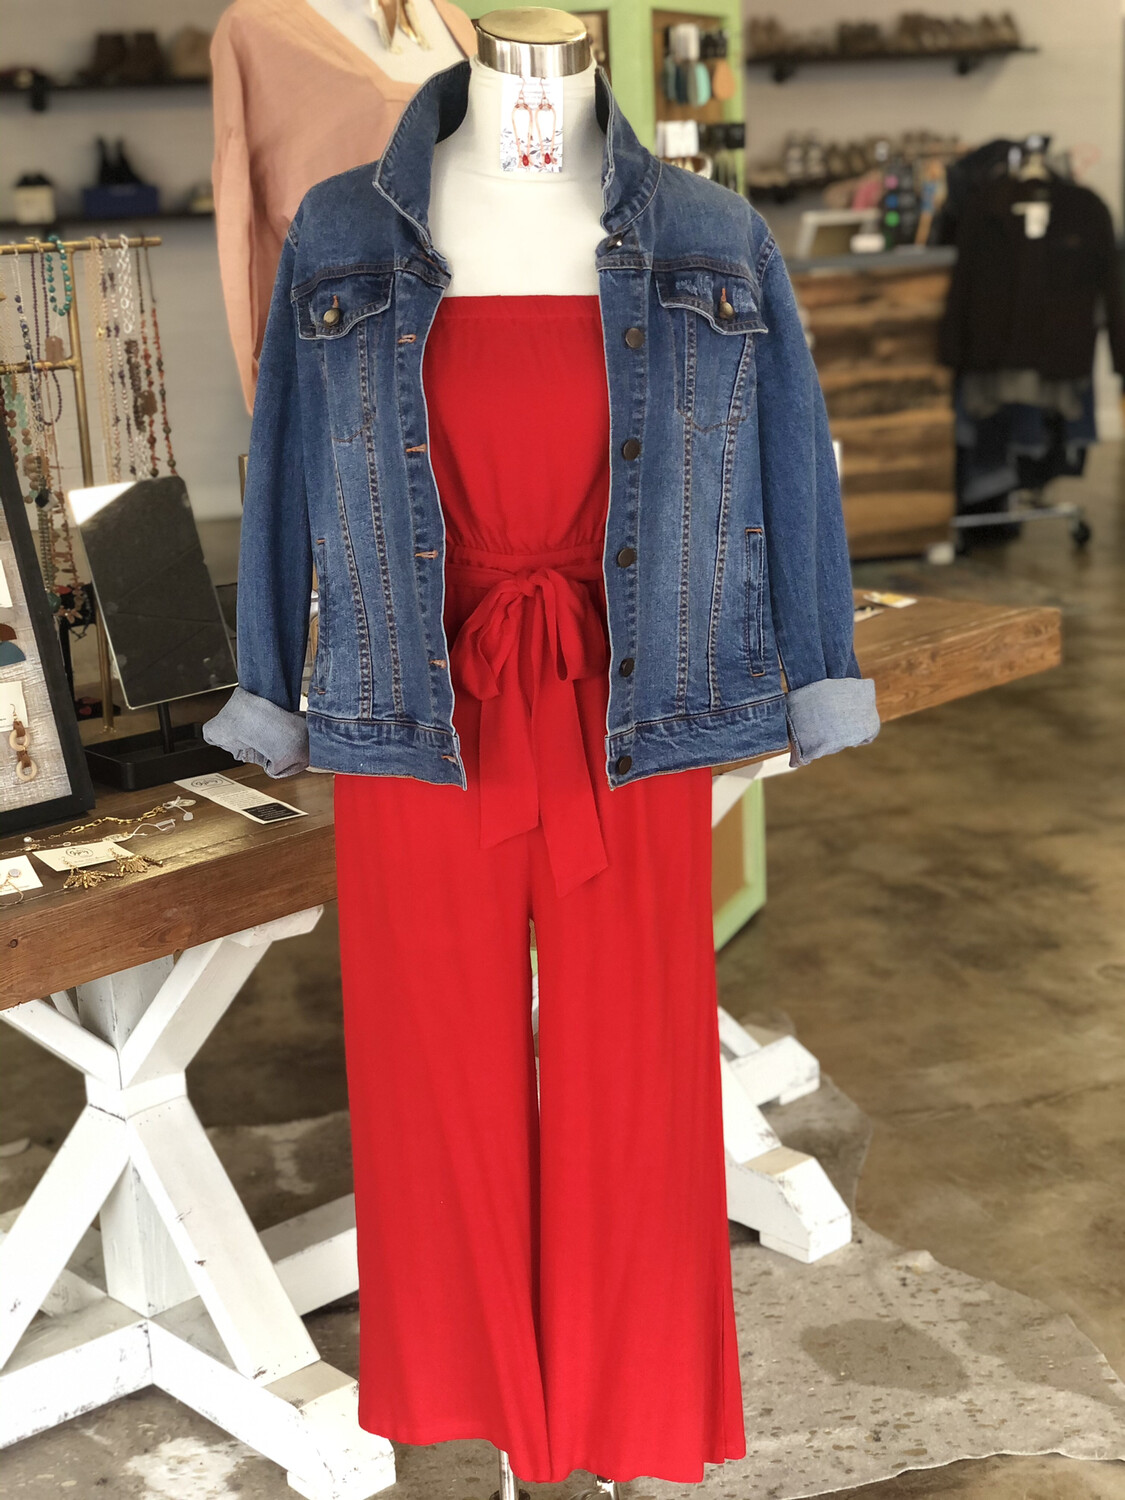 Lulus Red Strapless Belted Jumpsuit - S